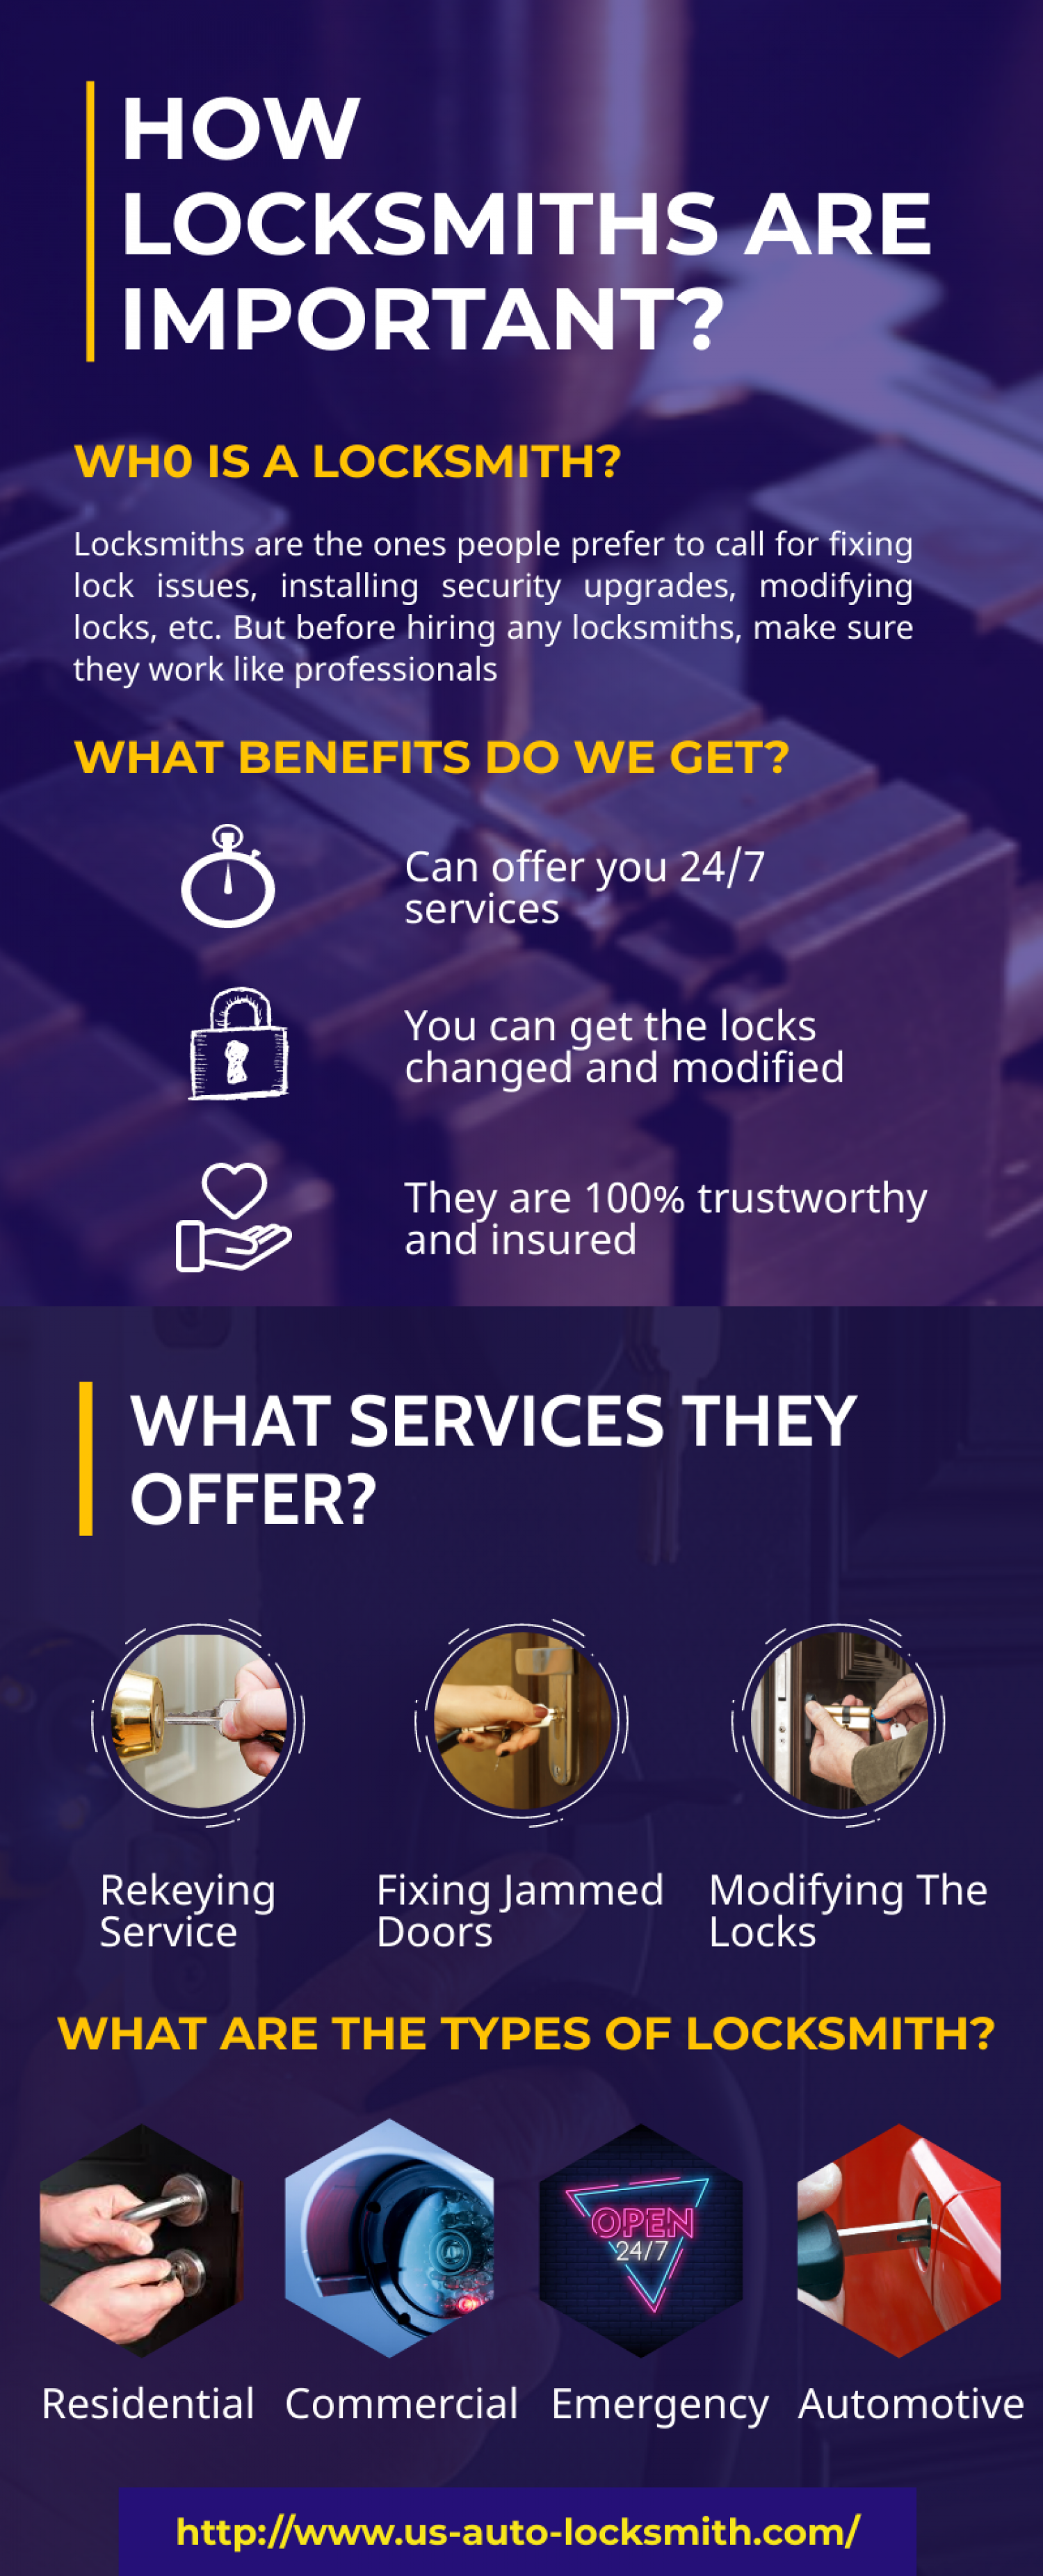 HOW LOCKSMITHS ARE IMPORTANT? Infographic